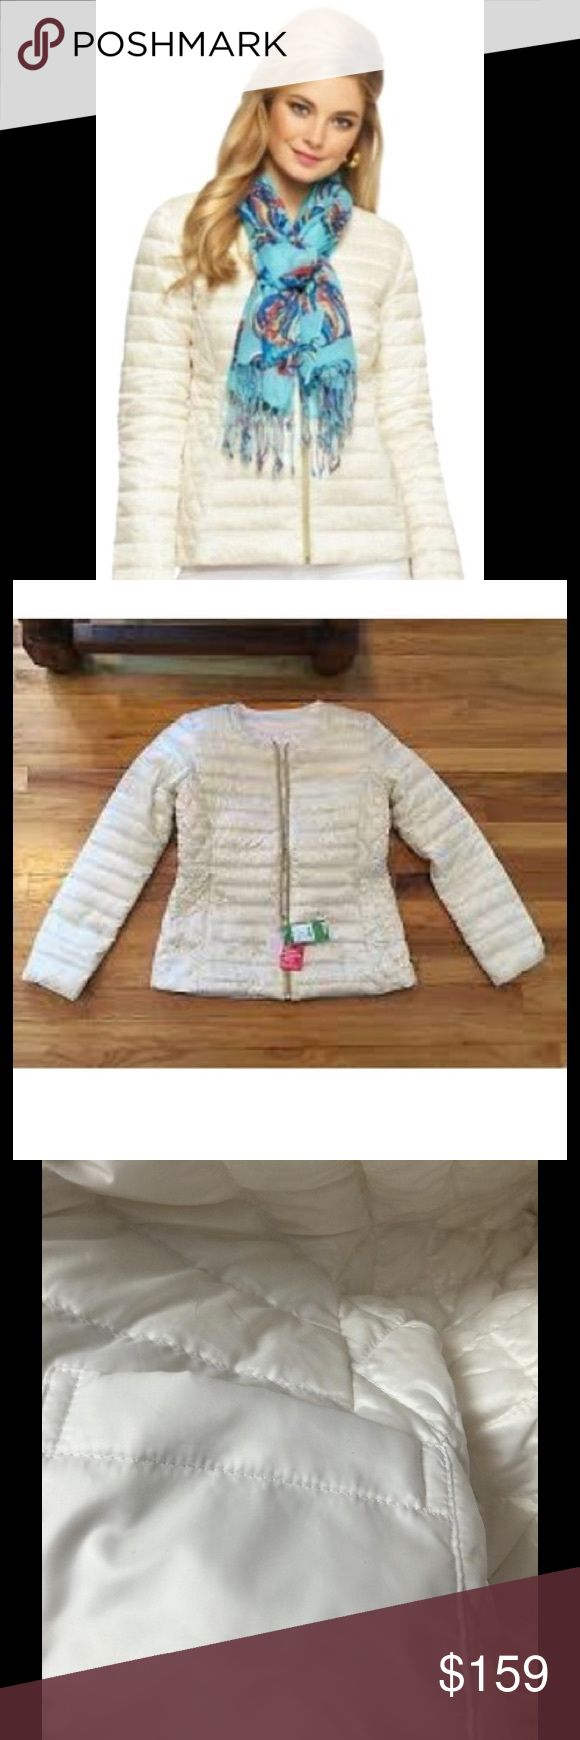 Lilly Pulitzer Printed Reversible Lilah Coat This coat is reversible and lightweight yet will keep you warm on the slopes this winter. The lining is called I'm Game! Both sides are gorgeous and chic. One side is solid ivory colored. Grab now and stock up for the cold season while it's still available at this price! Lilly Pulitzer Jackets & Coats Puffers